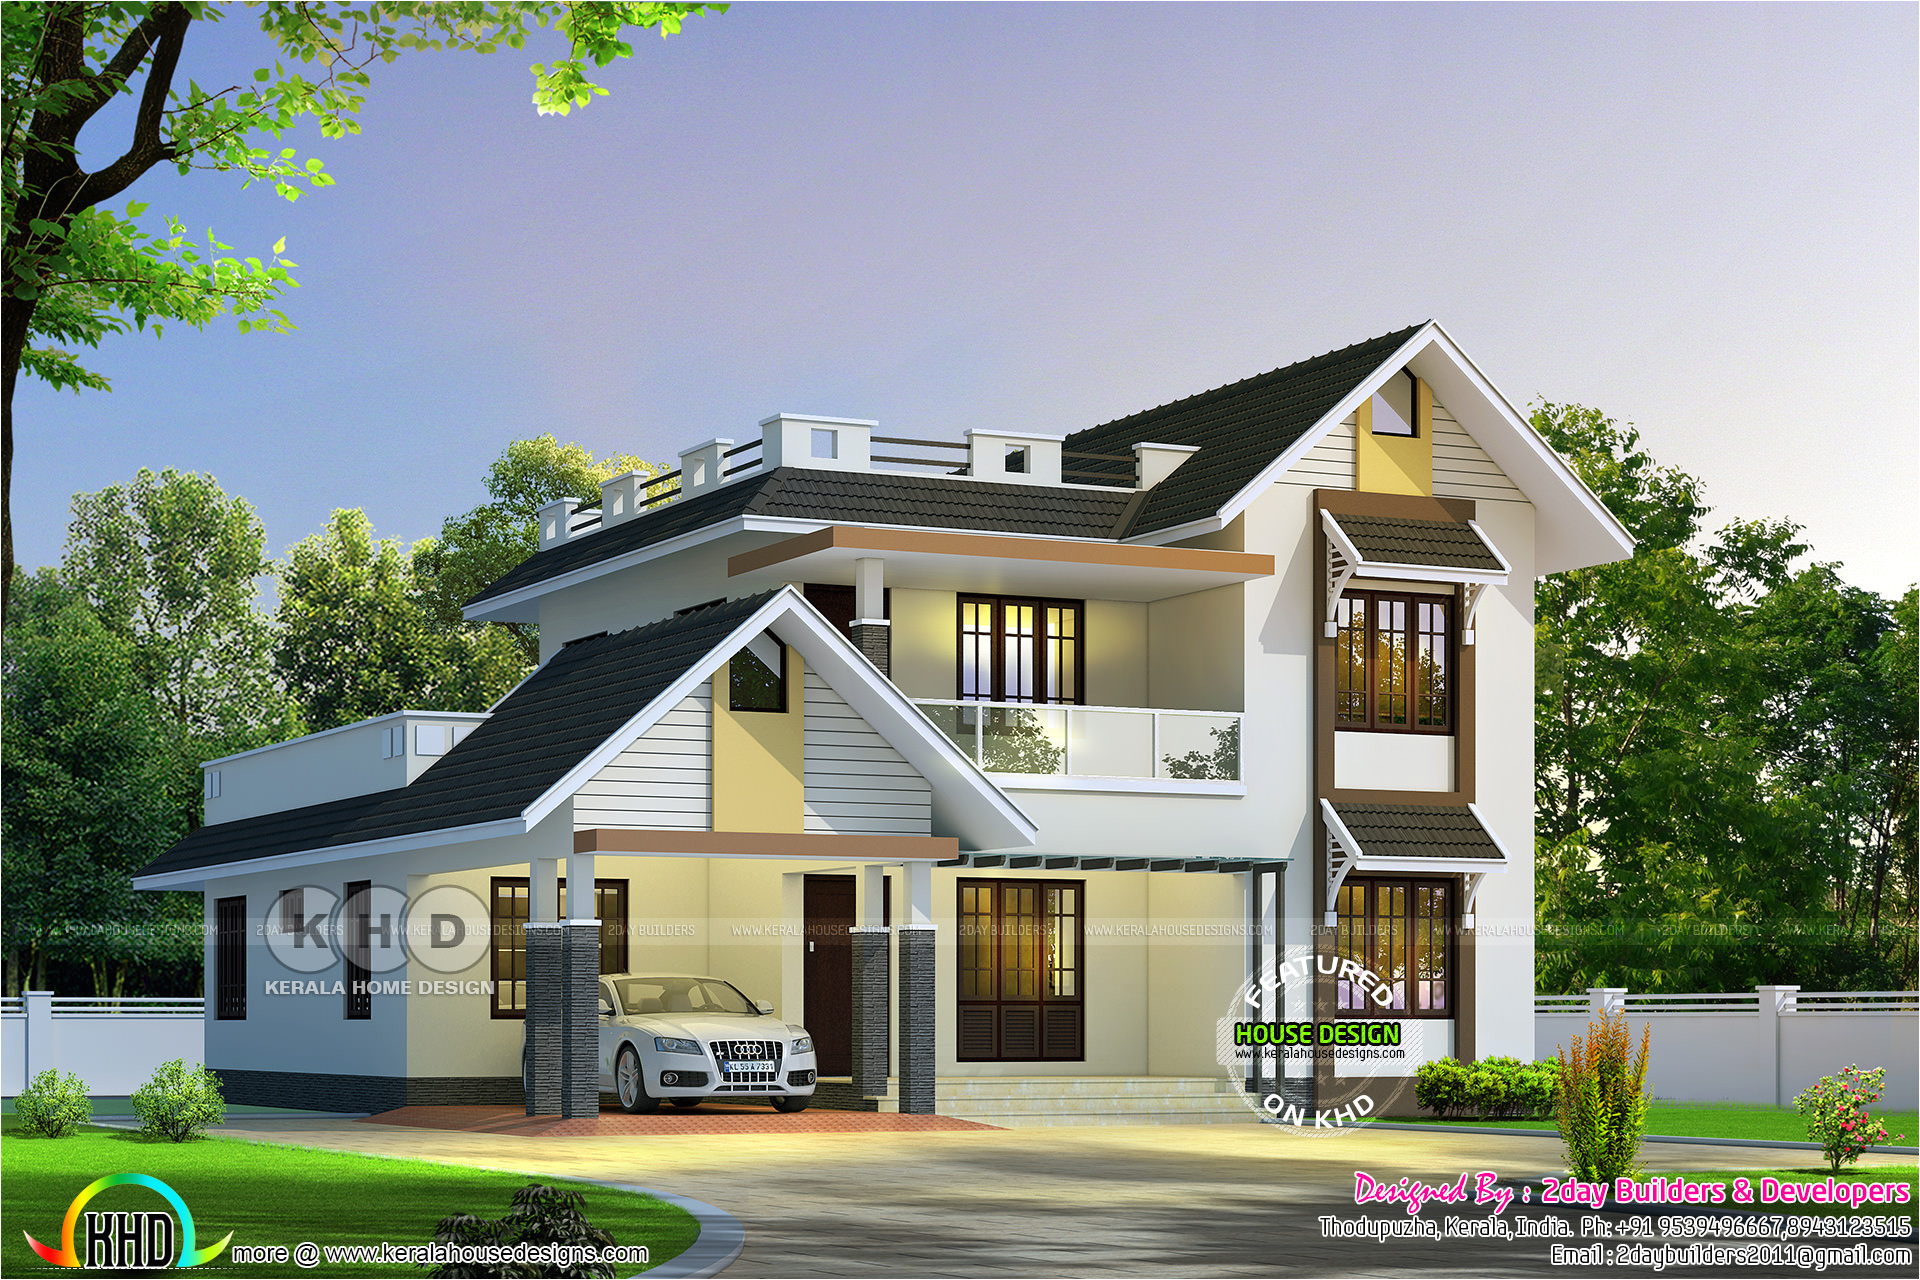 Home Design Plans with Photos In Kerala August 2017 Kerala Home Design and Floor Plans